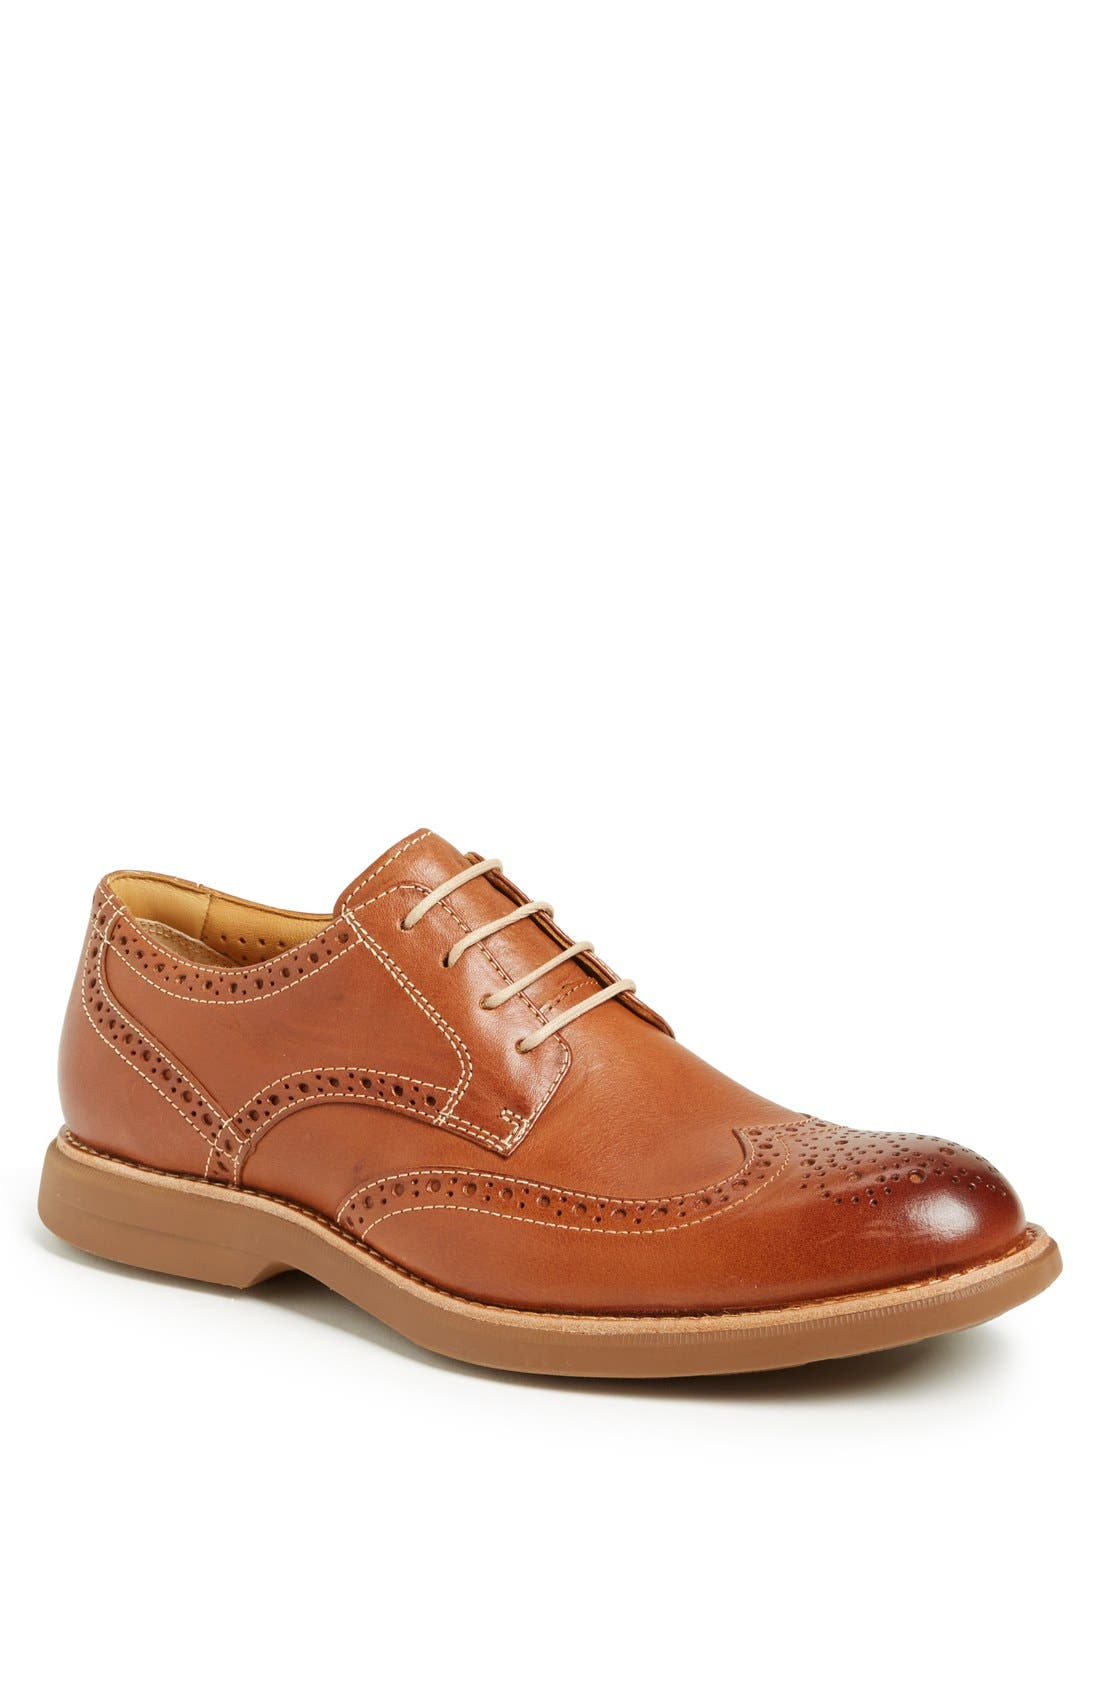 Alternate Image 1 Selected - Sperry 'Gold Cup - Bellingham' Wingtip